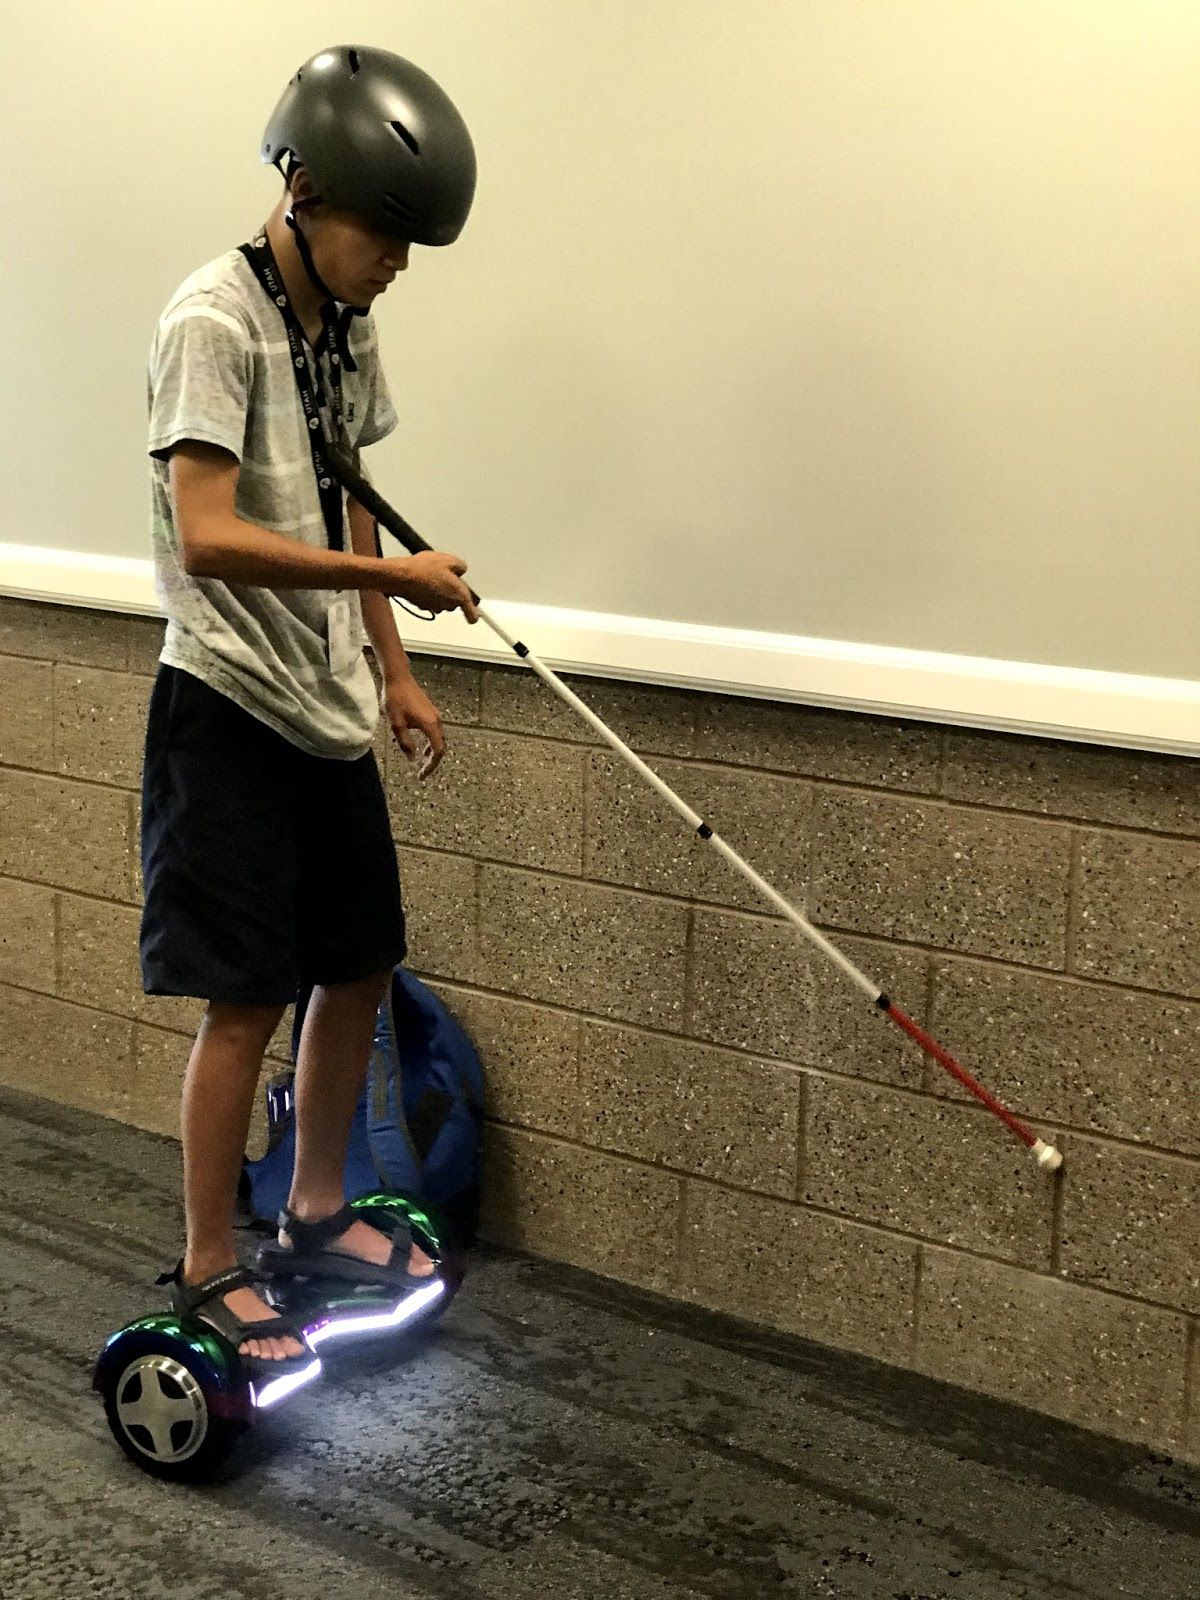 Use A Hoverboard To Teach Ecc Skills To Students Who Are